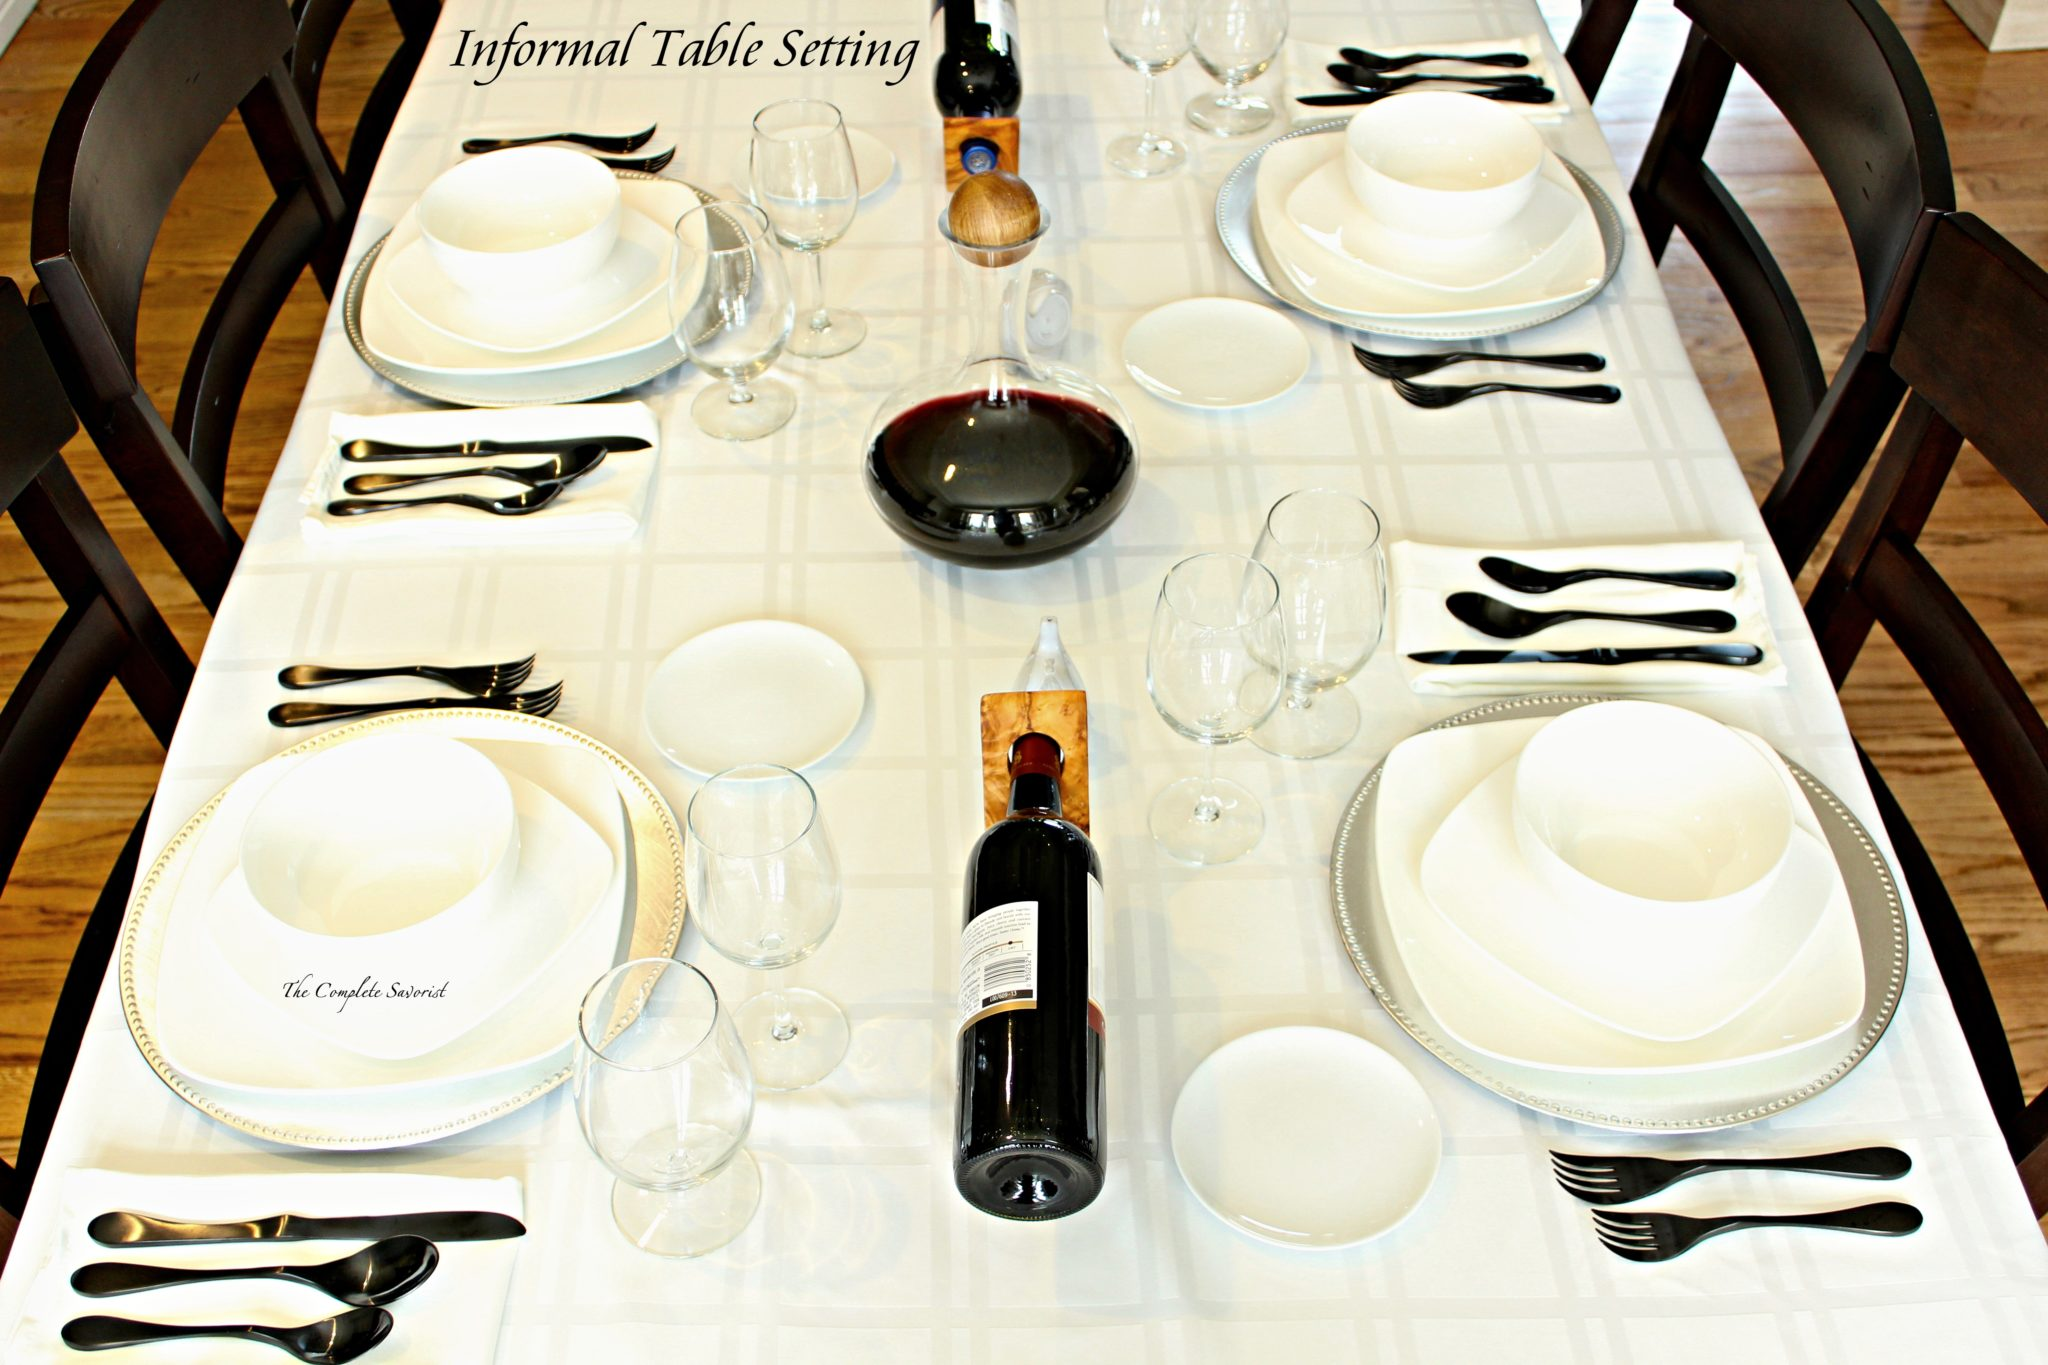 How To Set An Informal Table ~ The Table Setting May Be Called Informal,  But It Doesnu0027t Lack For Elegance In Its Simplicity.